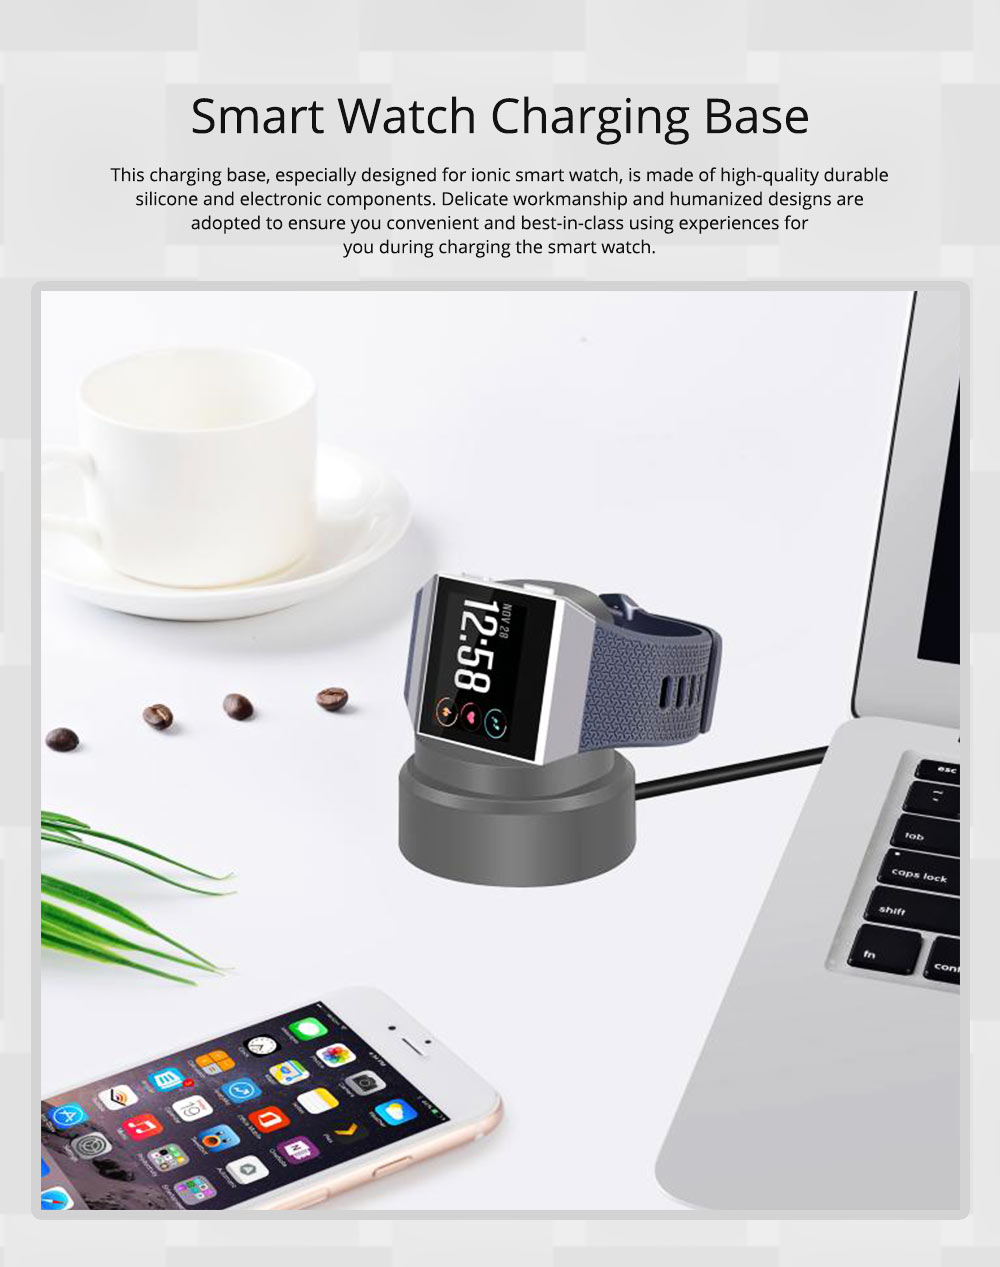 Small Ionic Watch Wireless Charging Base, Scratching-proof Silicone Smart Watch Charger 0